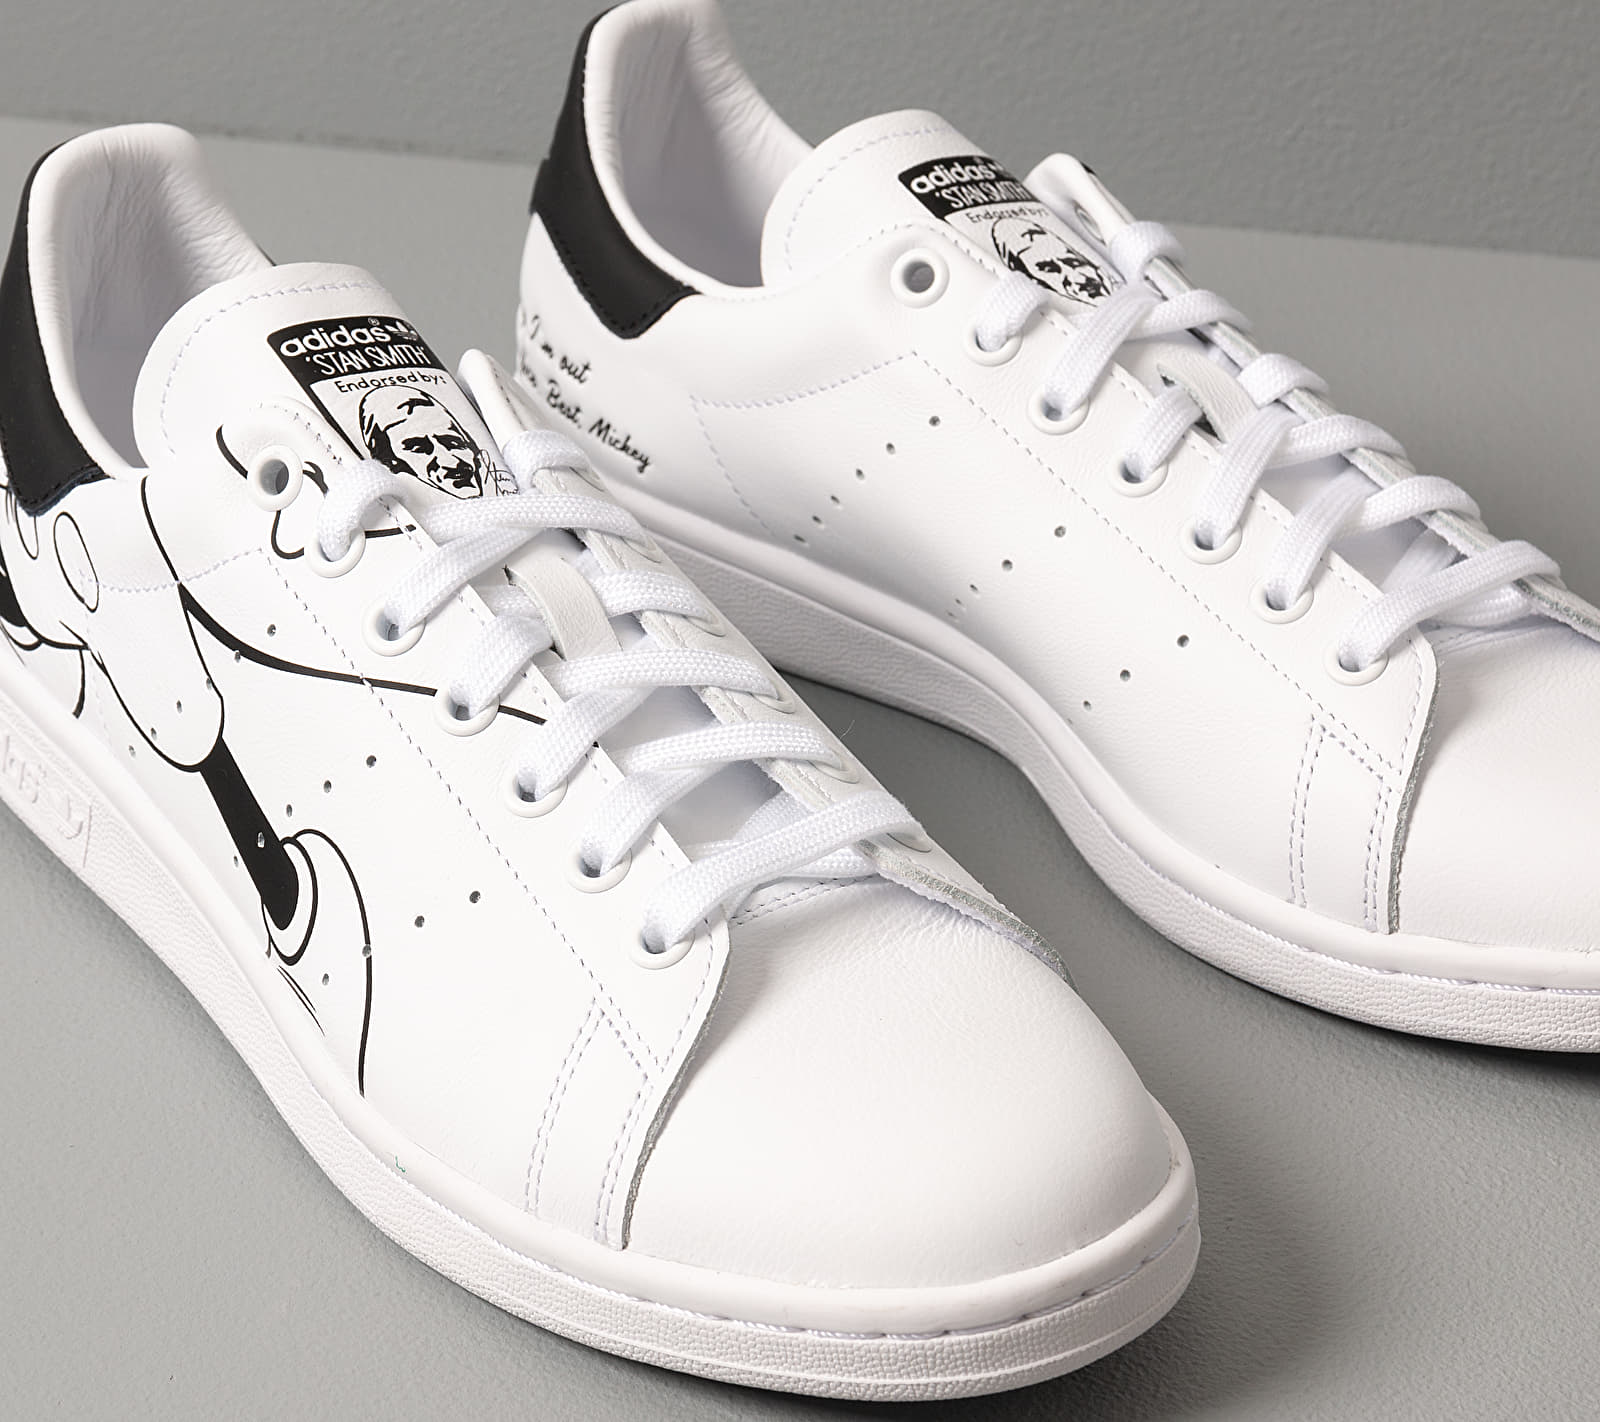 adidas Stan Smith Mickey Mouse Ftwr White/ Core Black/ Ftwr White, Brown